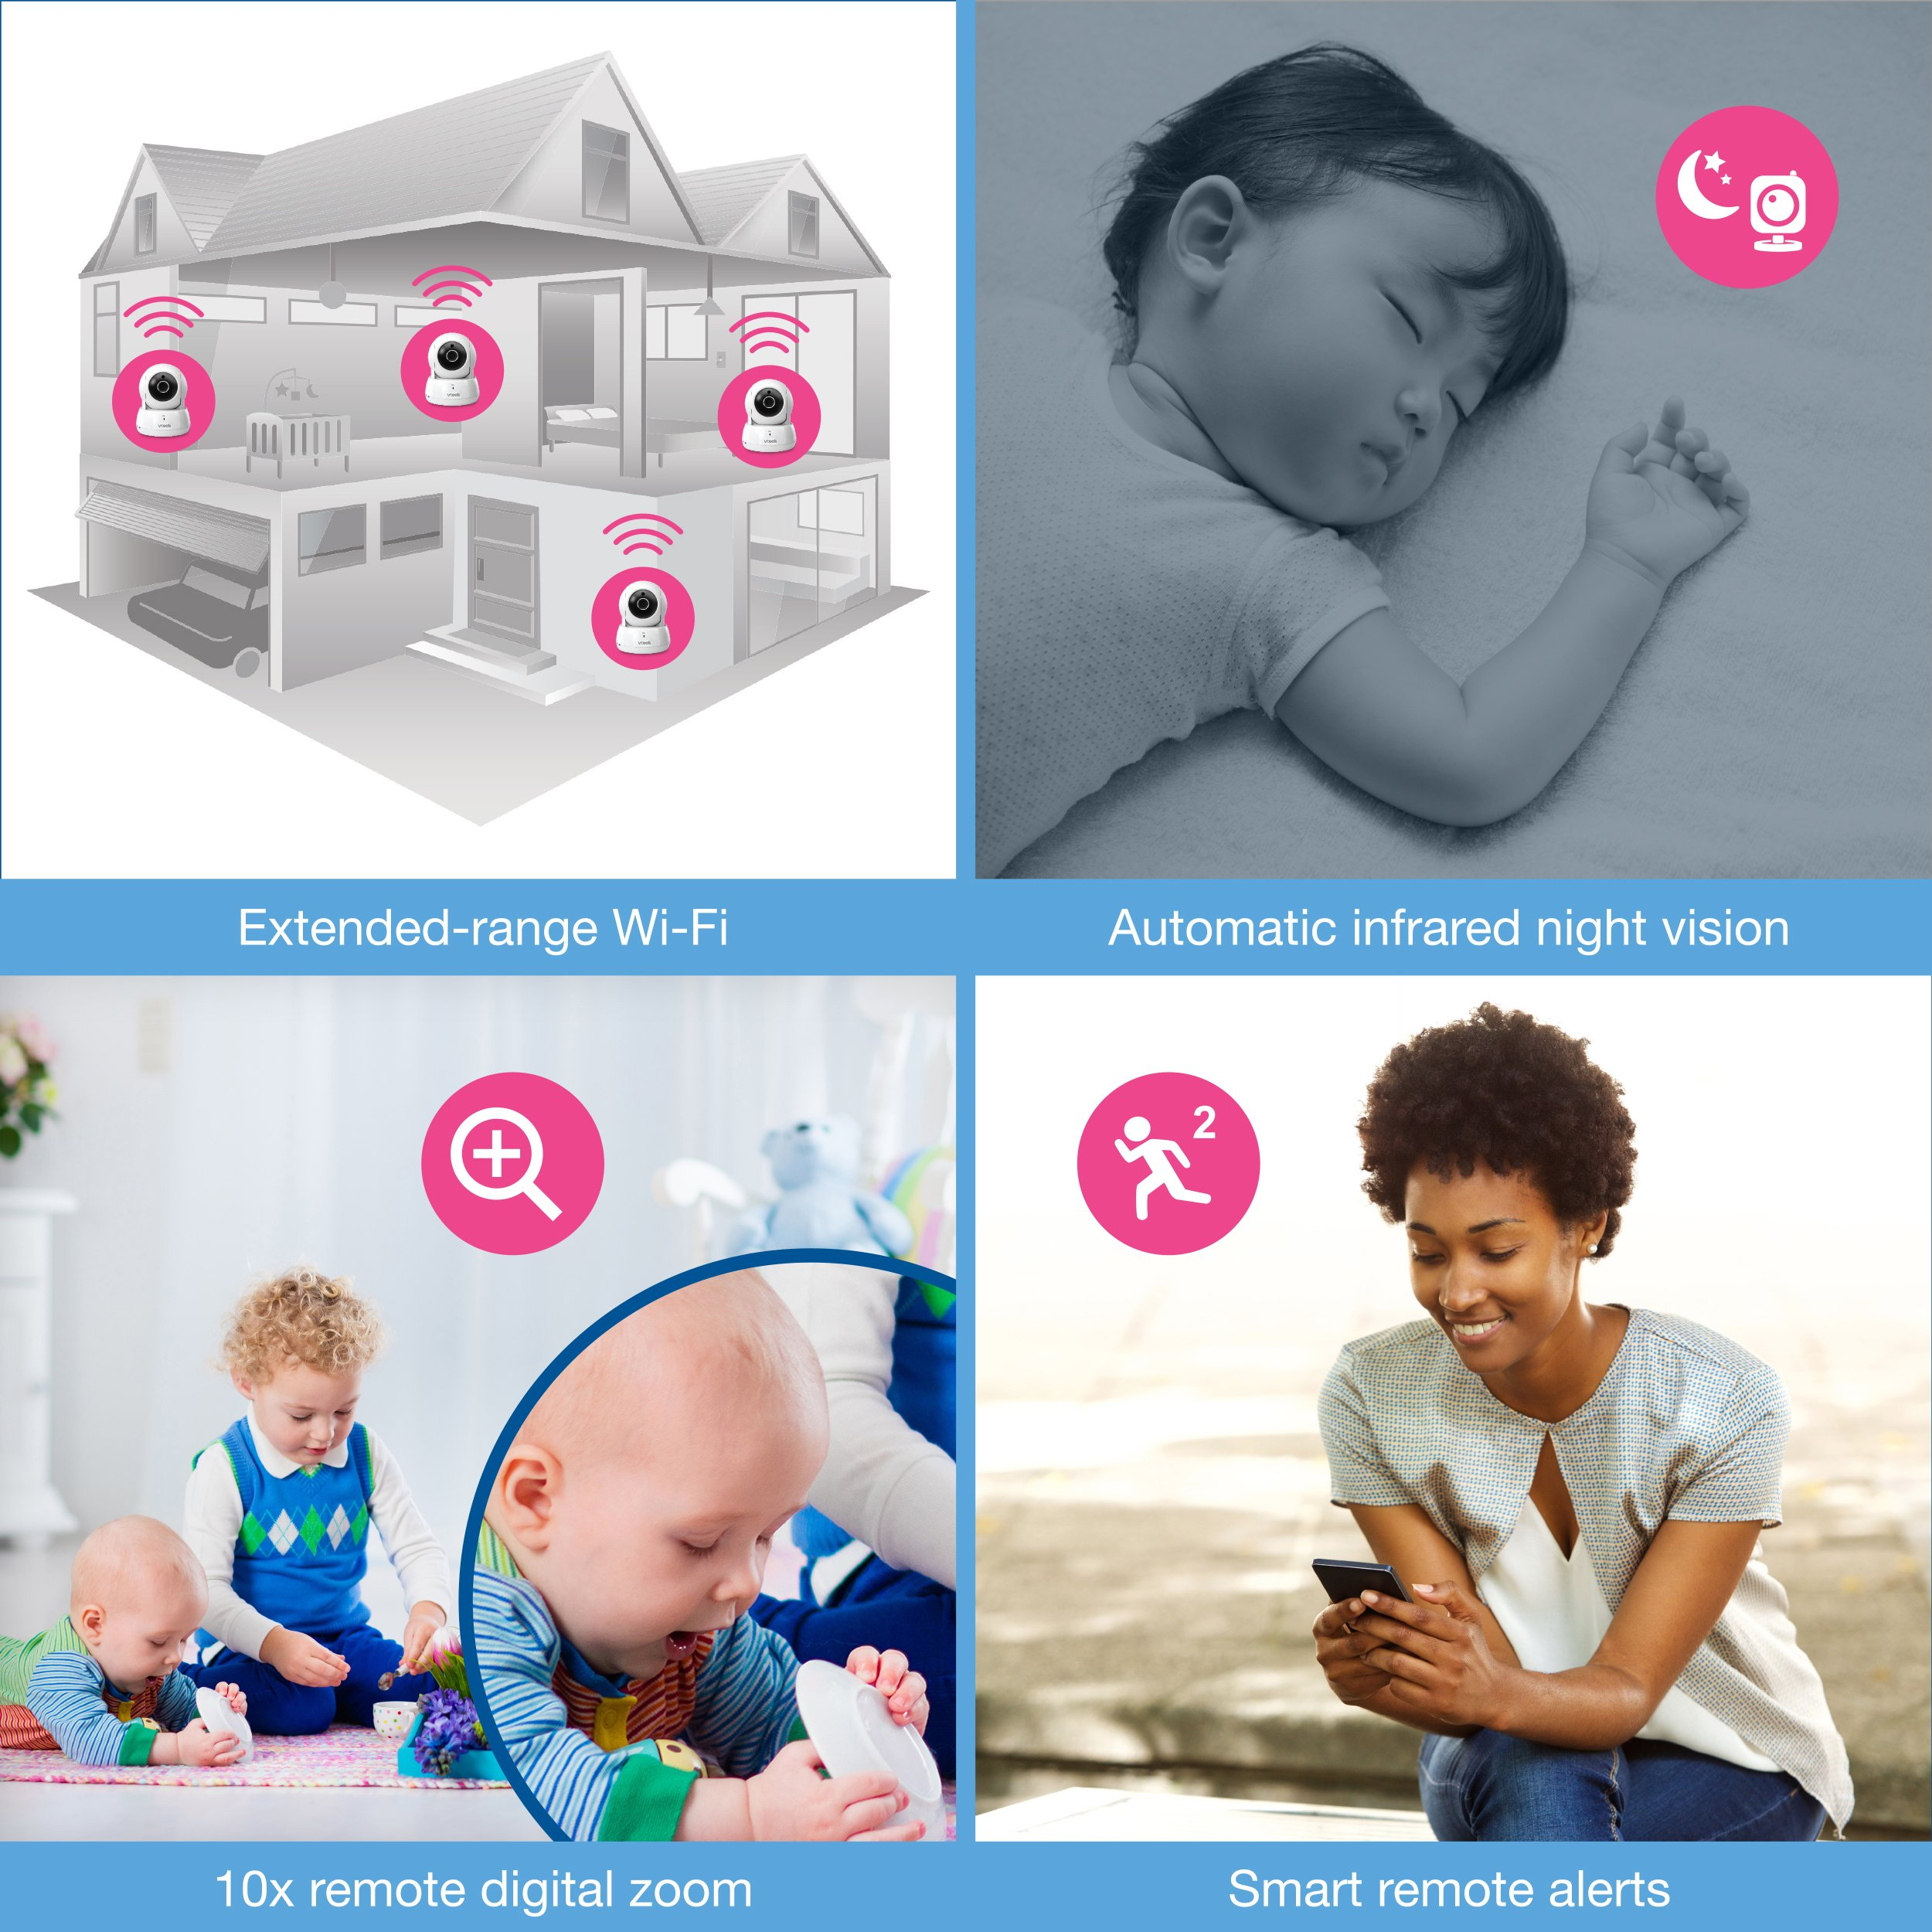 VTech VM991 Wireless WiFi Video Baby Monitor with Remote Access App, 5-inch Touch Screen, Remote Access Pan, Tilt & Zoom, Motion Alerts & Support for up to 10 Cameras by VTech (Image #4)